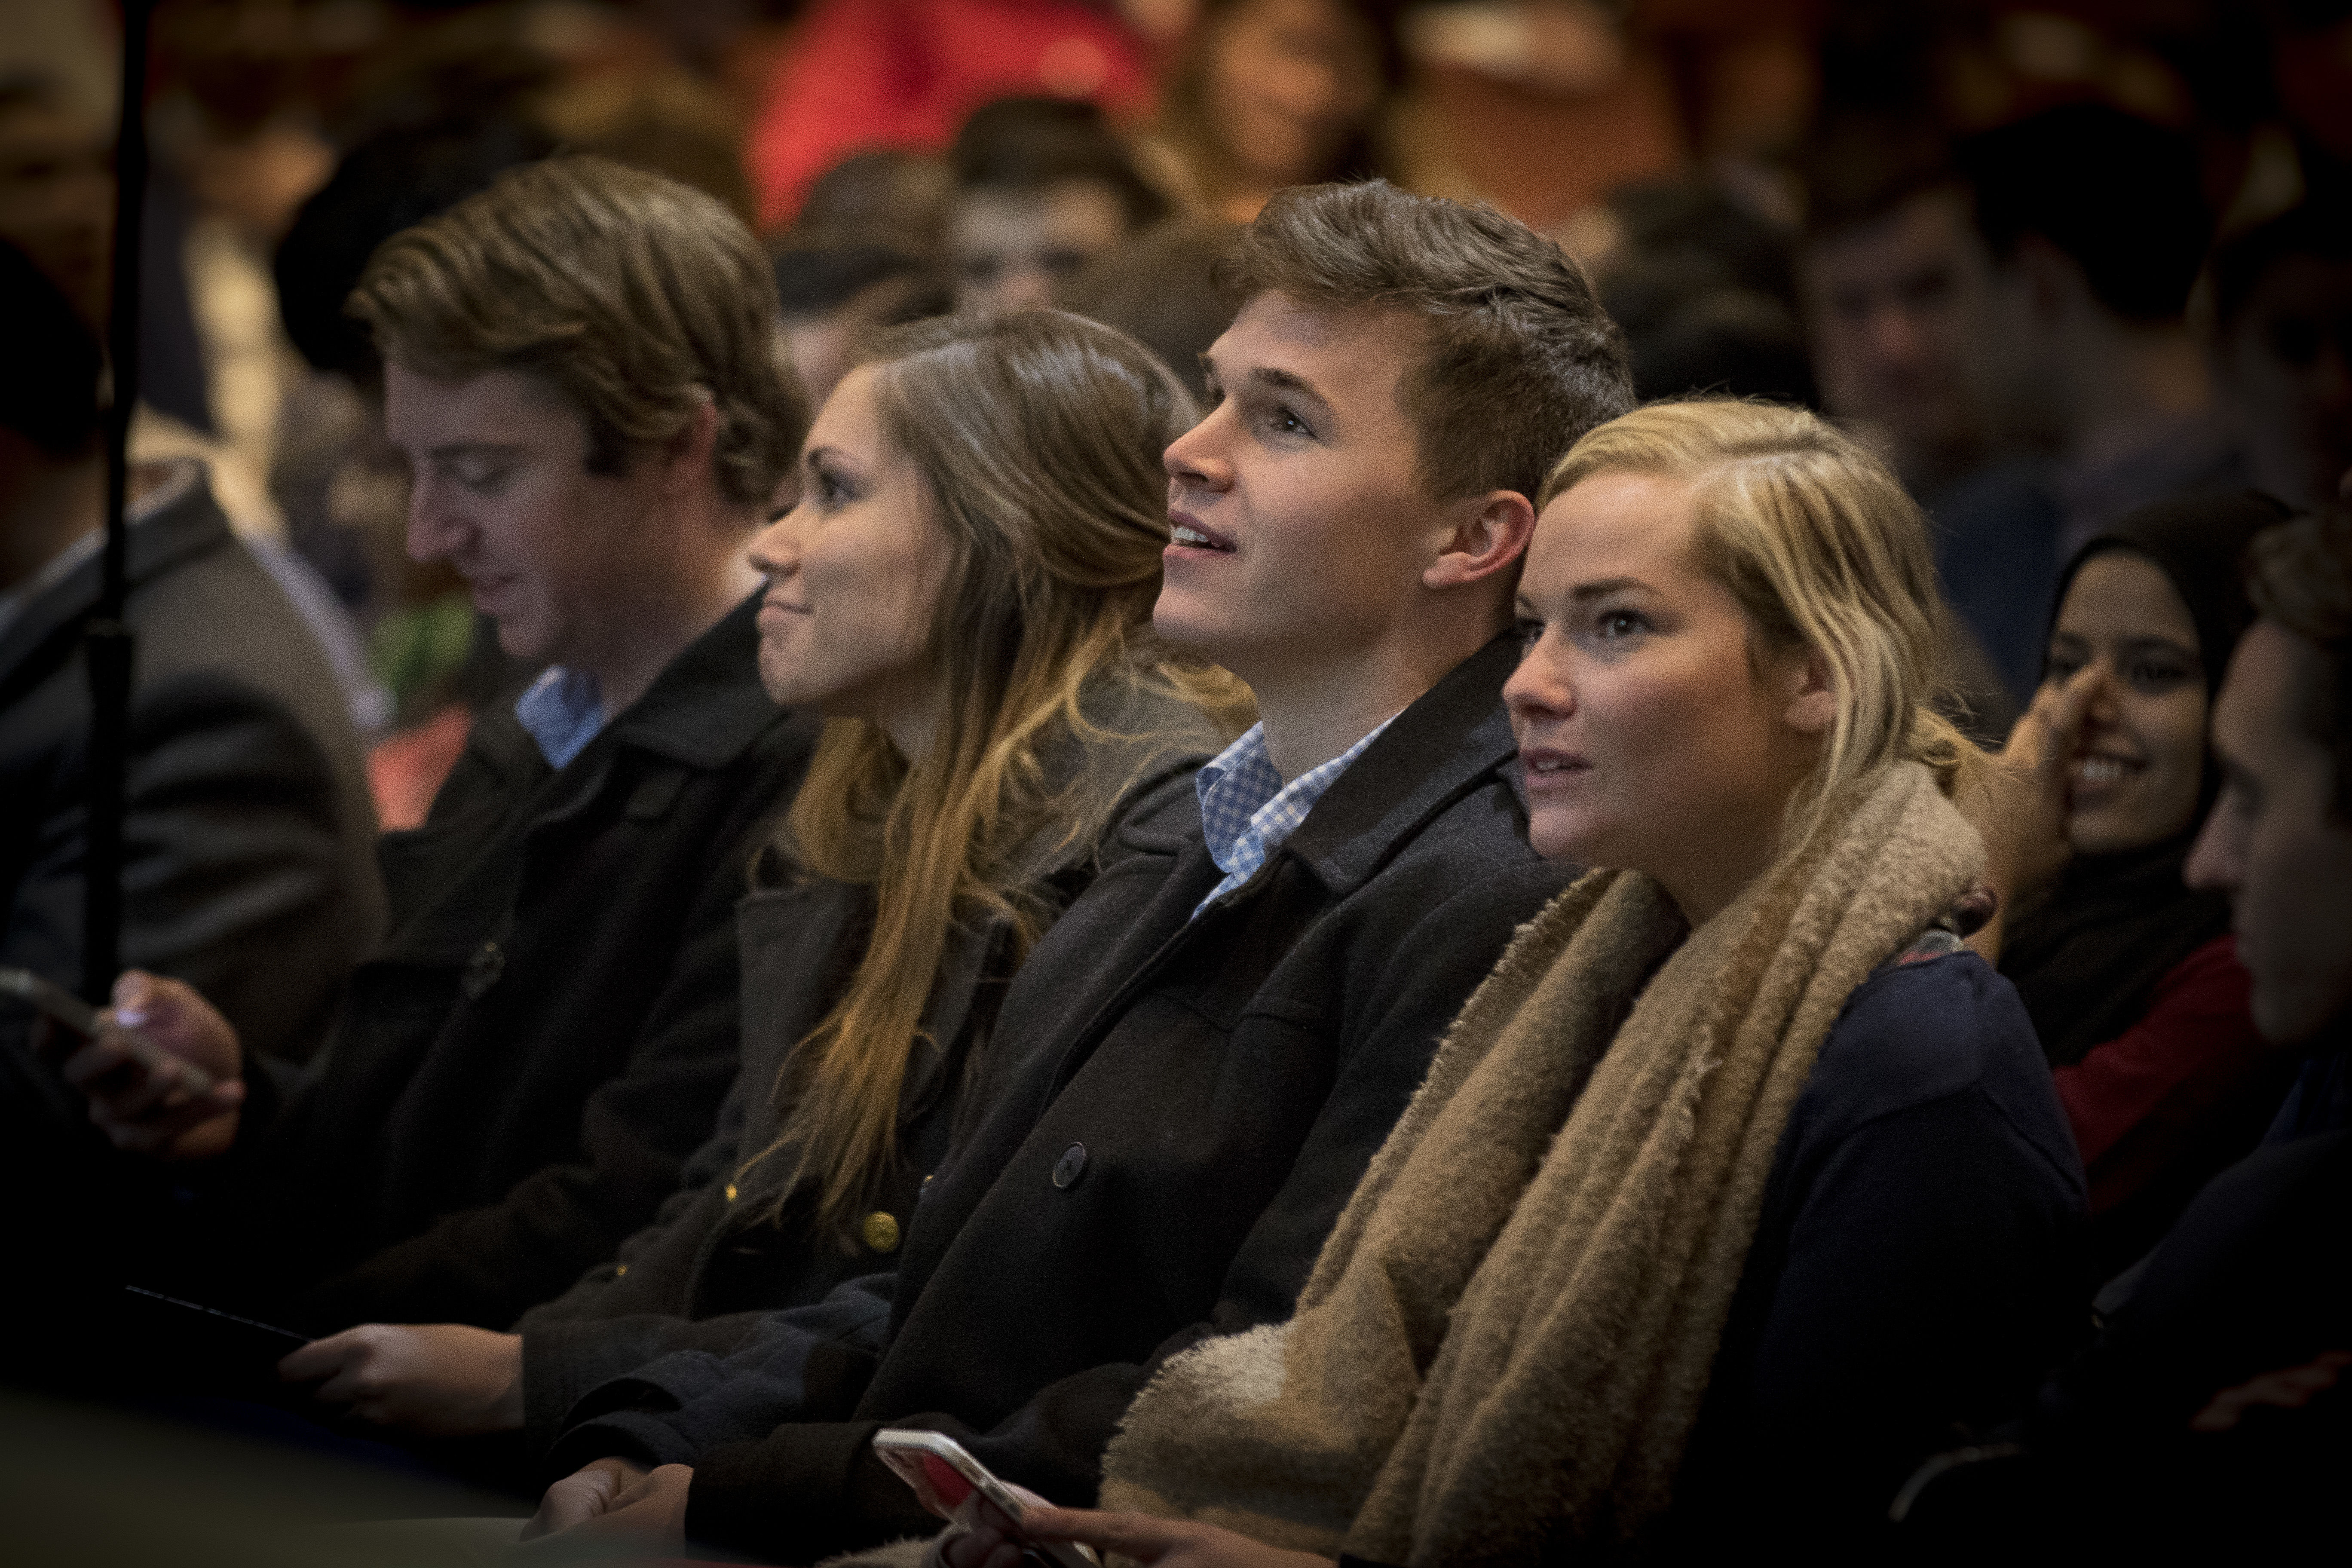 Students in the audience during a Research Day event.